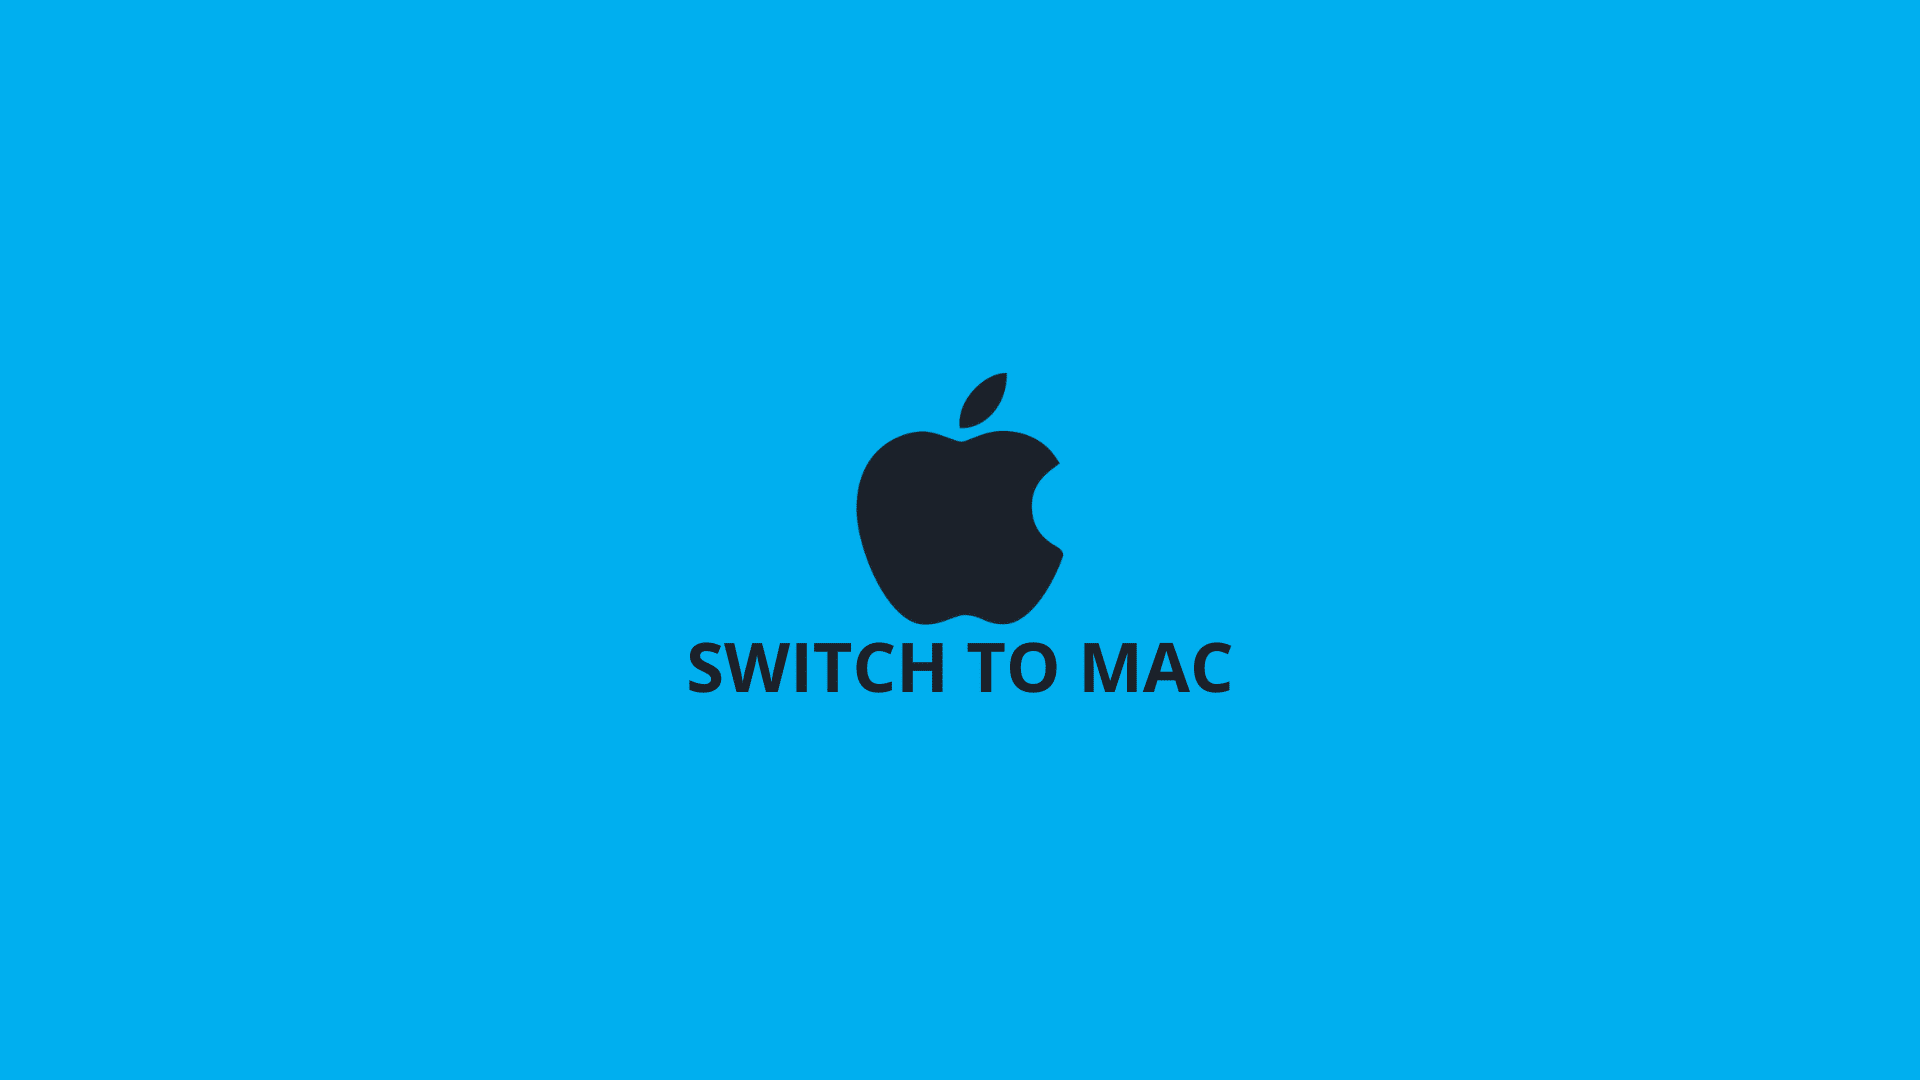 Switch to Mac